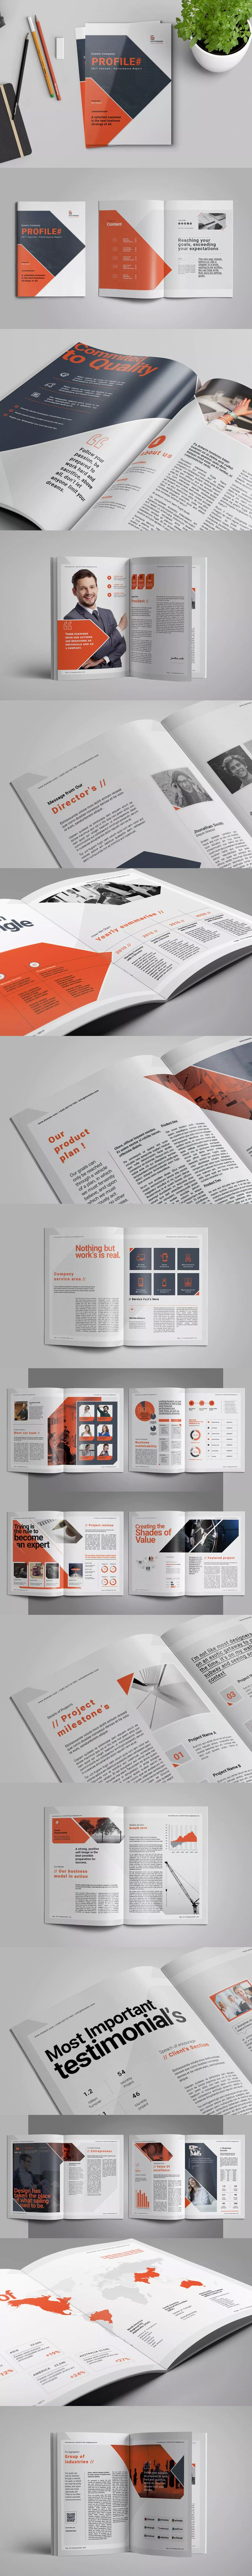 Company Profile Template InDesign INDD A4 and US Letter Size